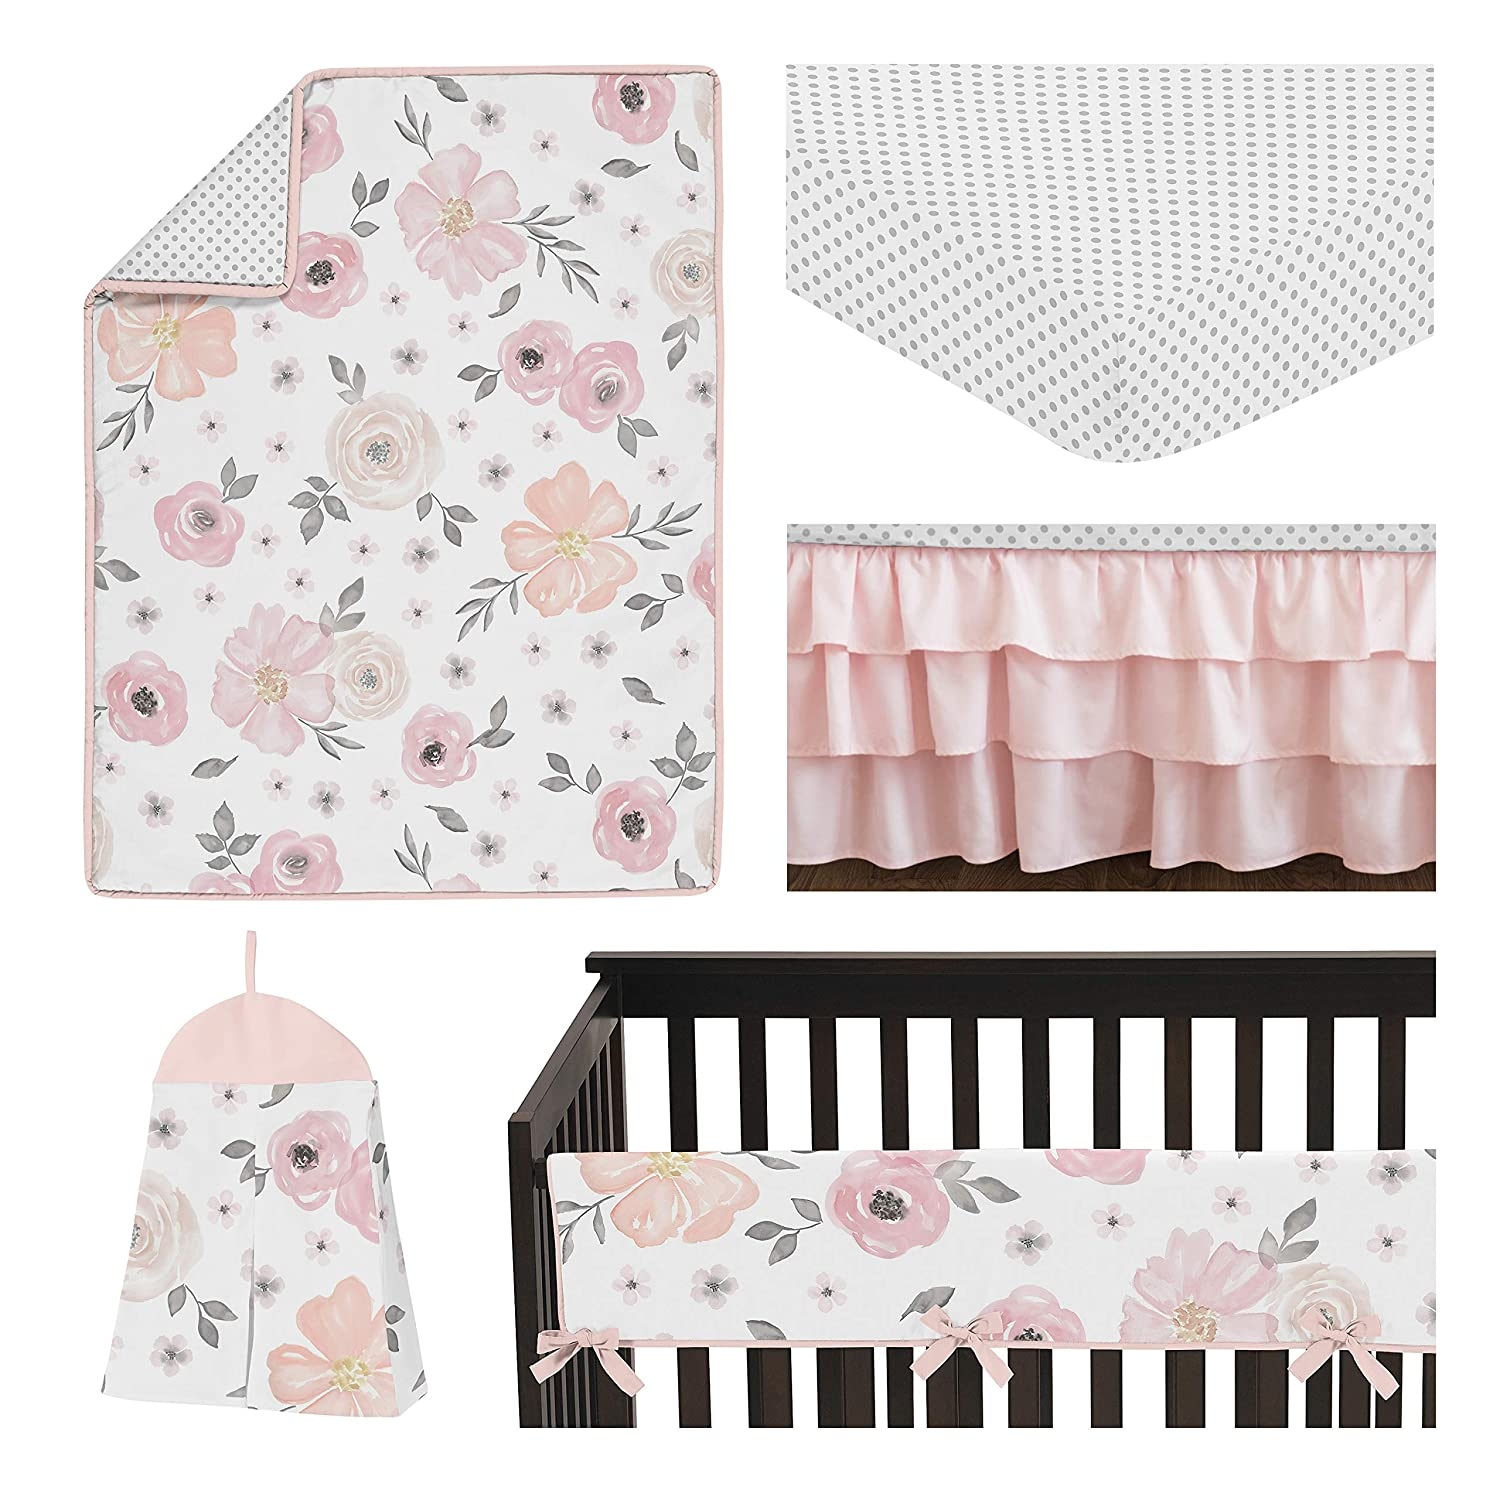 Bedding 5 Pieces Sweet Jojo Designs Pink And Grey Watercolor Floral Baby Girl Nursery Crib Set Blush Gray White Shabby Chic Rose Flower Polka Dot